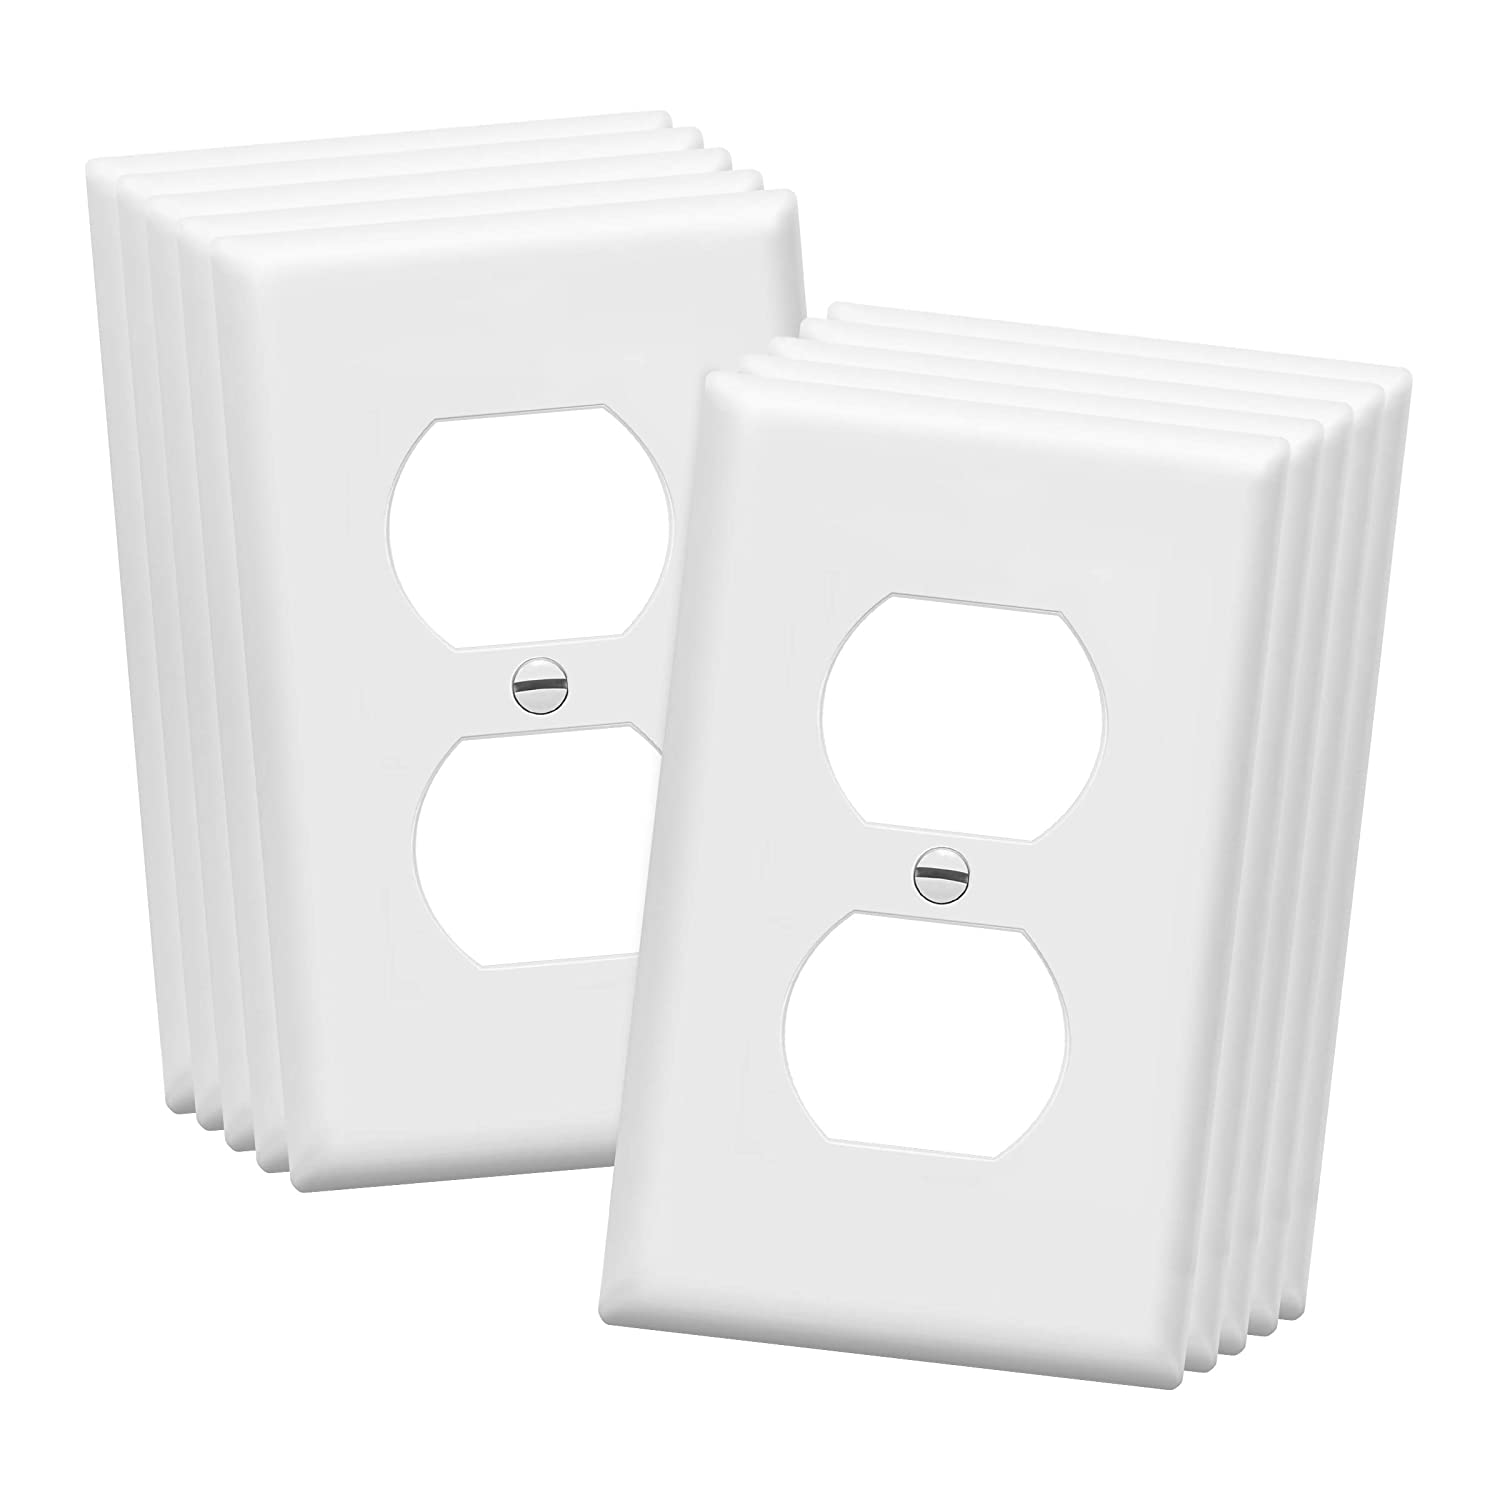 Up to 35% off ENERLITES Wall Plates and Light Switches